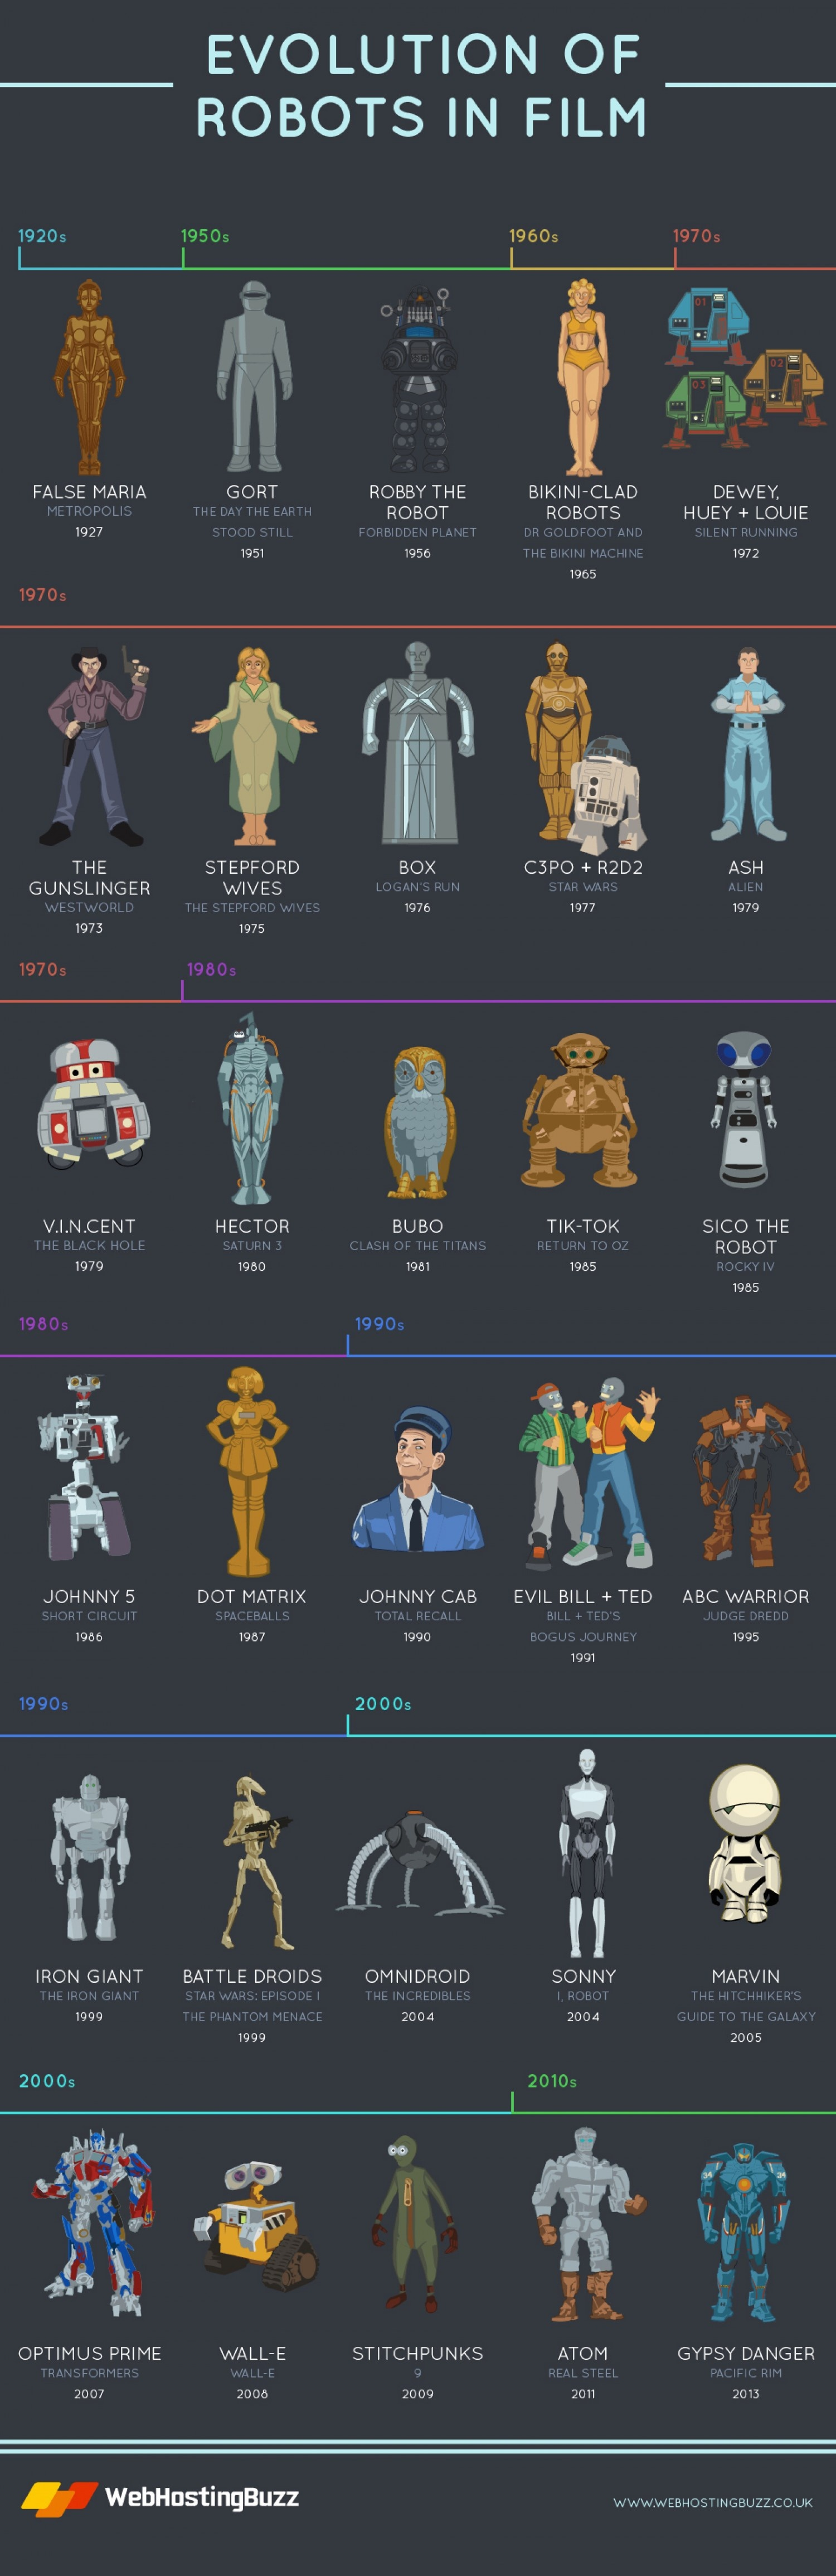 evolution-of-robots-in-films